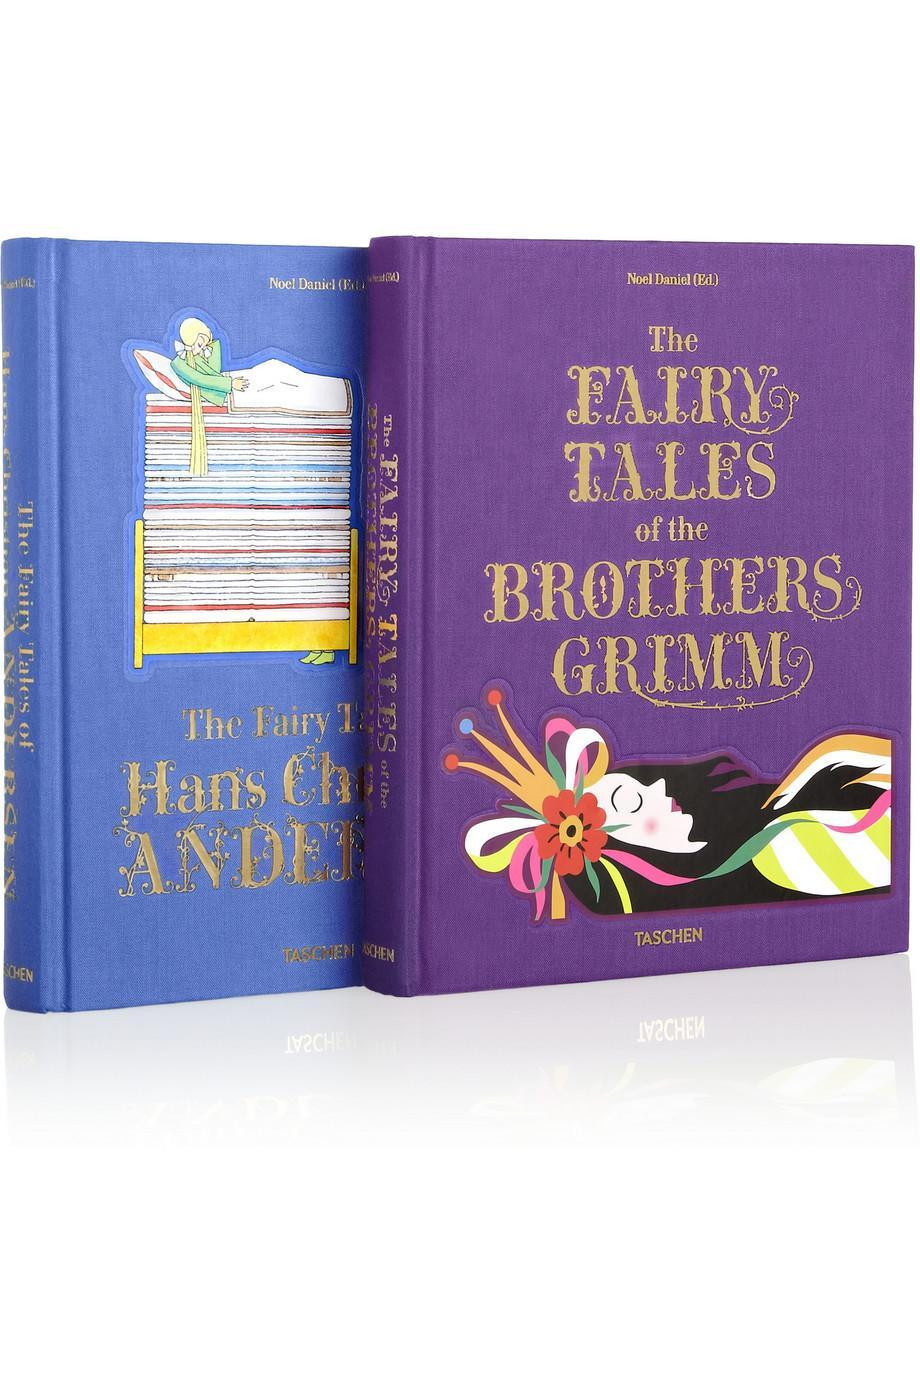 "<p>Because a night of beauty sleep shouldn't start without a bedtime story, no matter how old you are. <b><a href=""http://www.net-a-porter.com/us/en/product/437693/taschen/set-of-two-fairy-tale-books--hans-christian-andersen-and-the-brothers-grimm"" rel=""nofollow noopener"" target=""_blank"" data-ylk=""slk:Taschen Set of Two Fairy Tale Books"" class=""link rapid-noclick-resp"">Taschen Set of Two Fairy Tale Books</a> ($80)</b><br></p>"